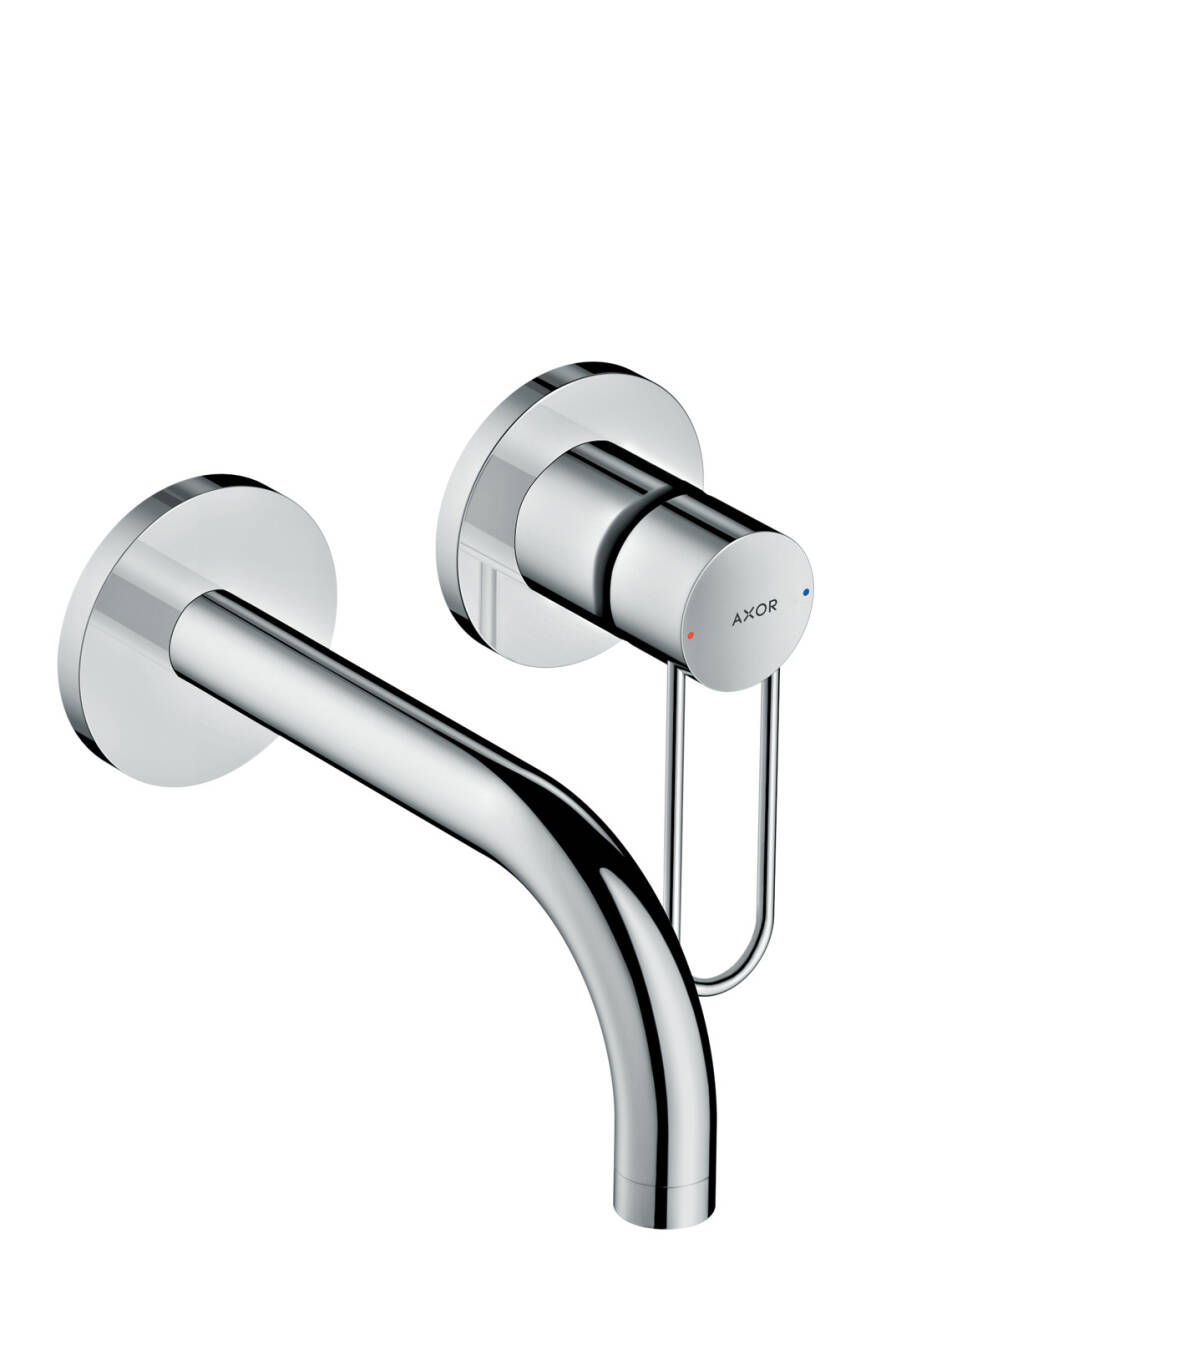 Single lever basin mixer for concealed installation wall-mounted with loop handle and spout 165 mm, Chrome, 38121000